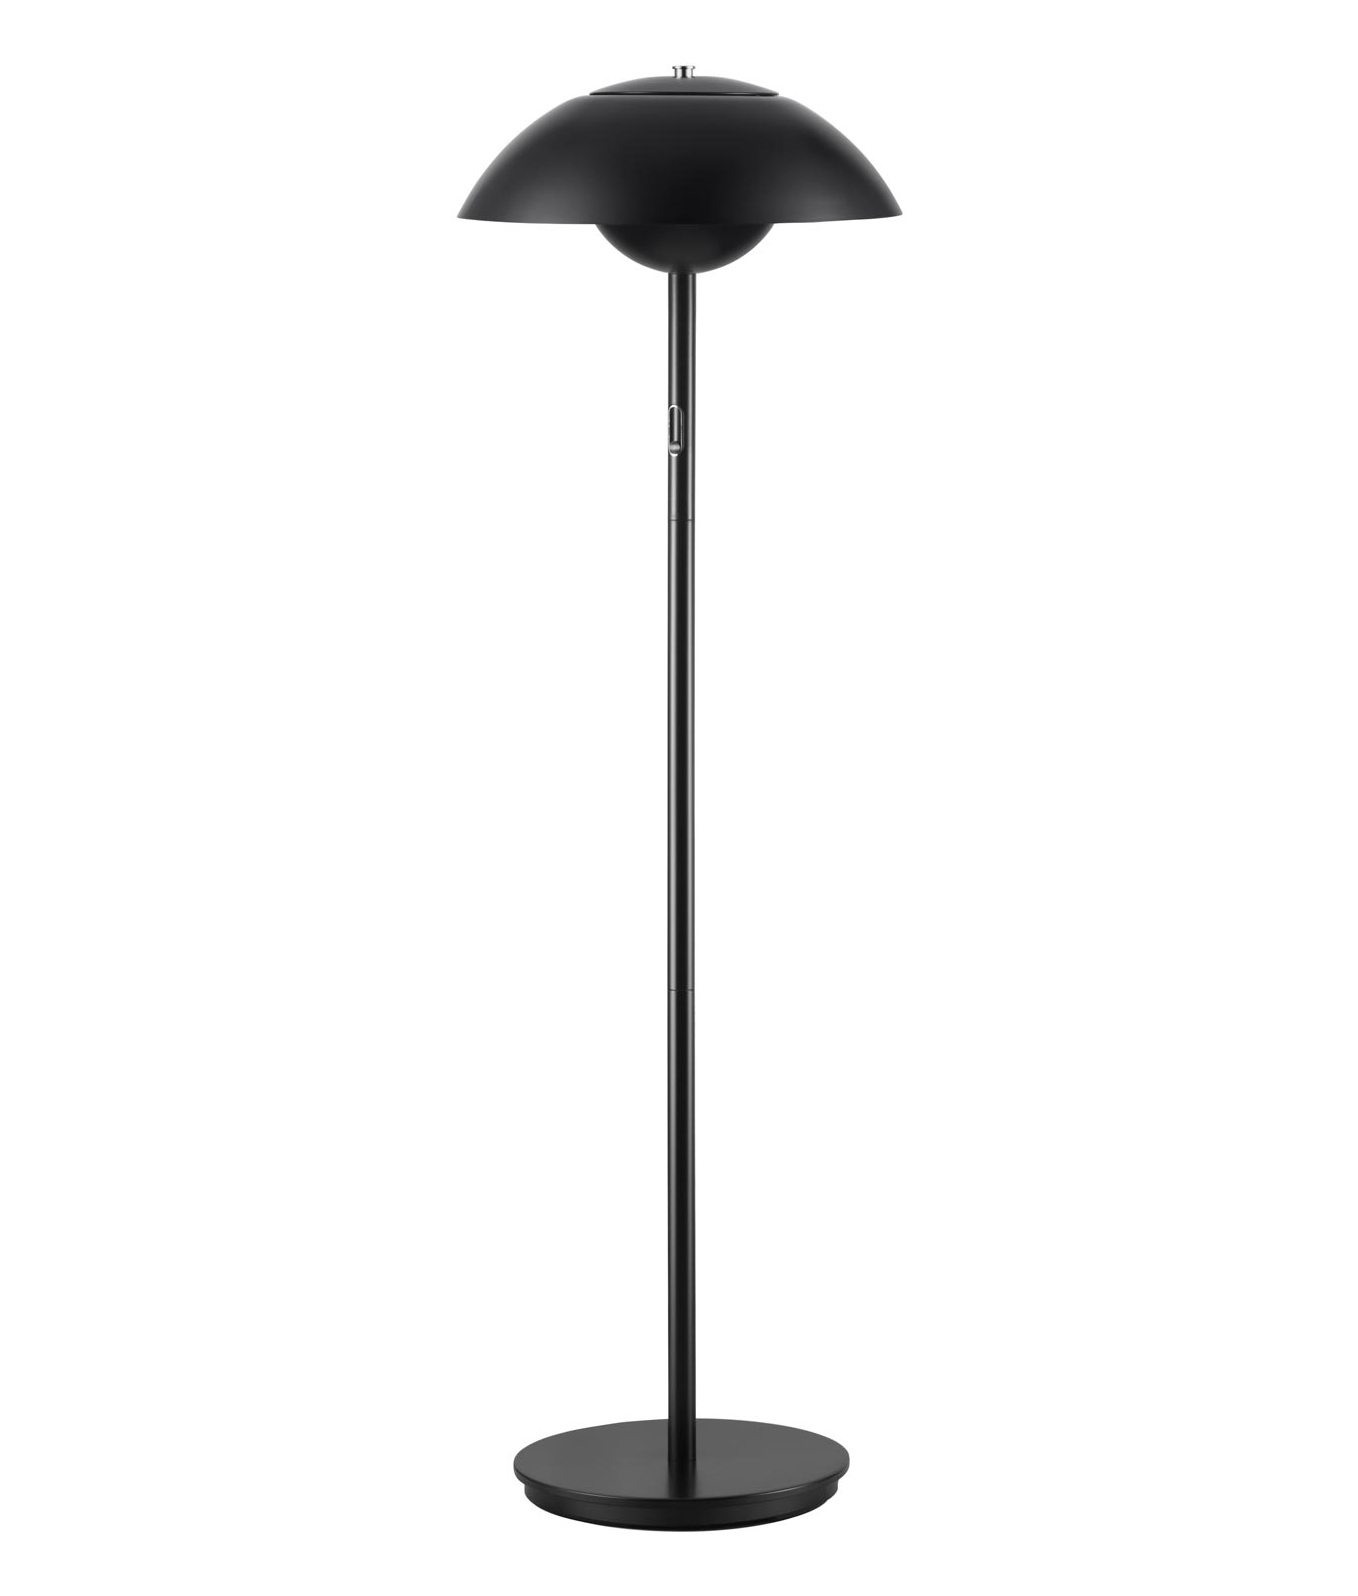 Dimmable Floor Lamp Modern Dimmable Led Floor Lamp Available In Either Black